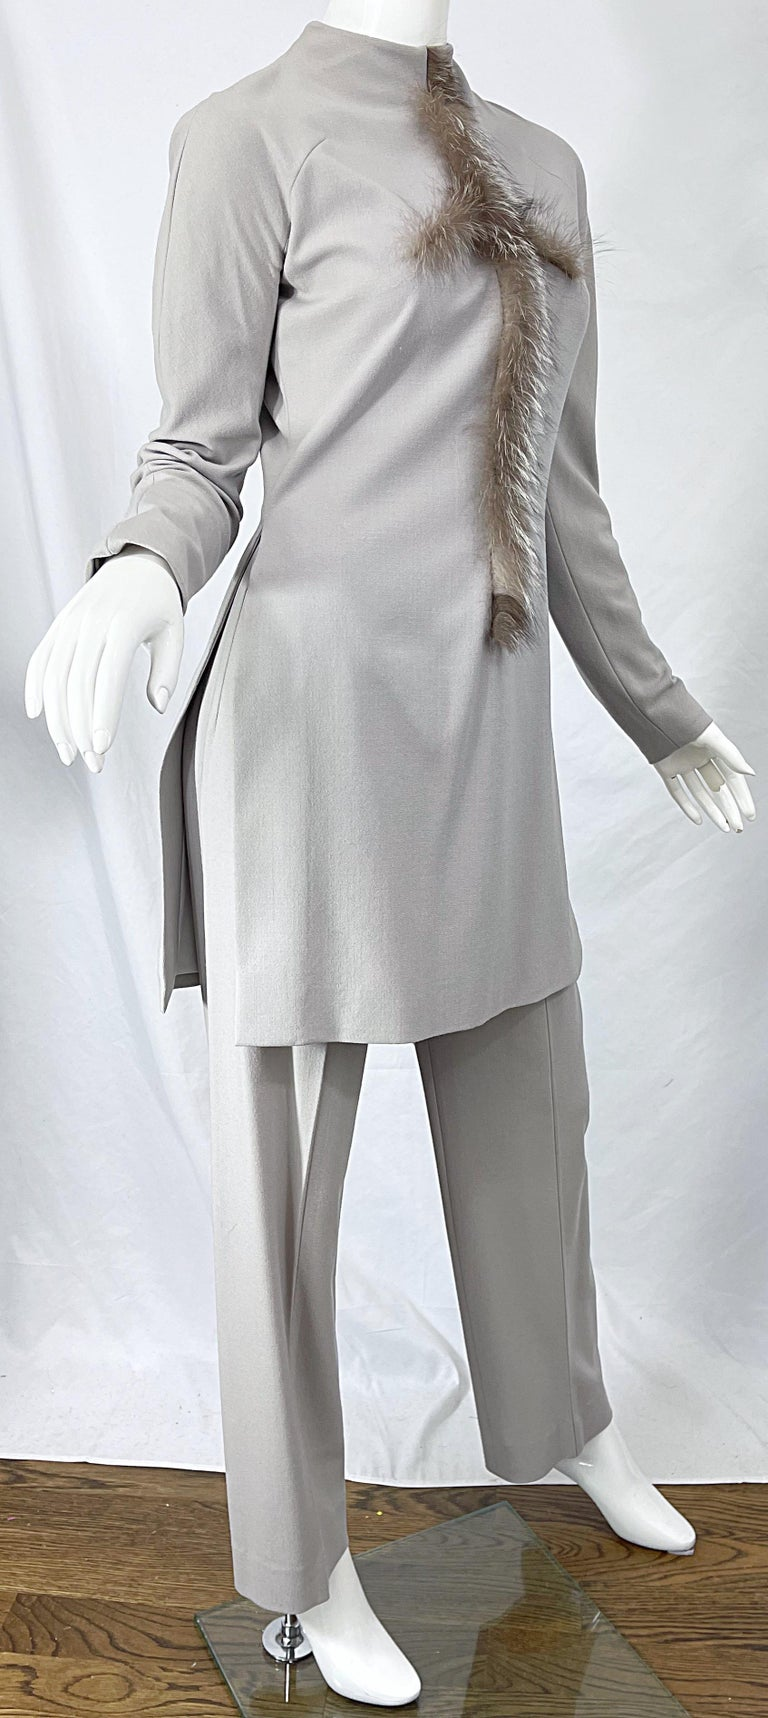 Givenchy Couture Alexander McQueen F/W 2003 Grey Runway Tunic + Slim Pants For Sale 7